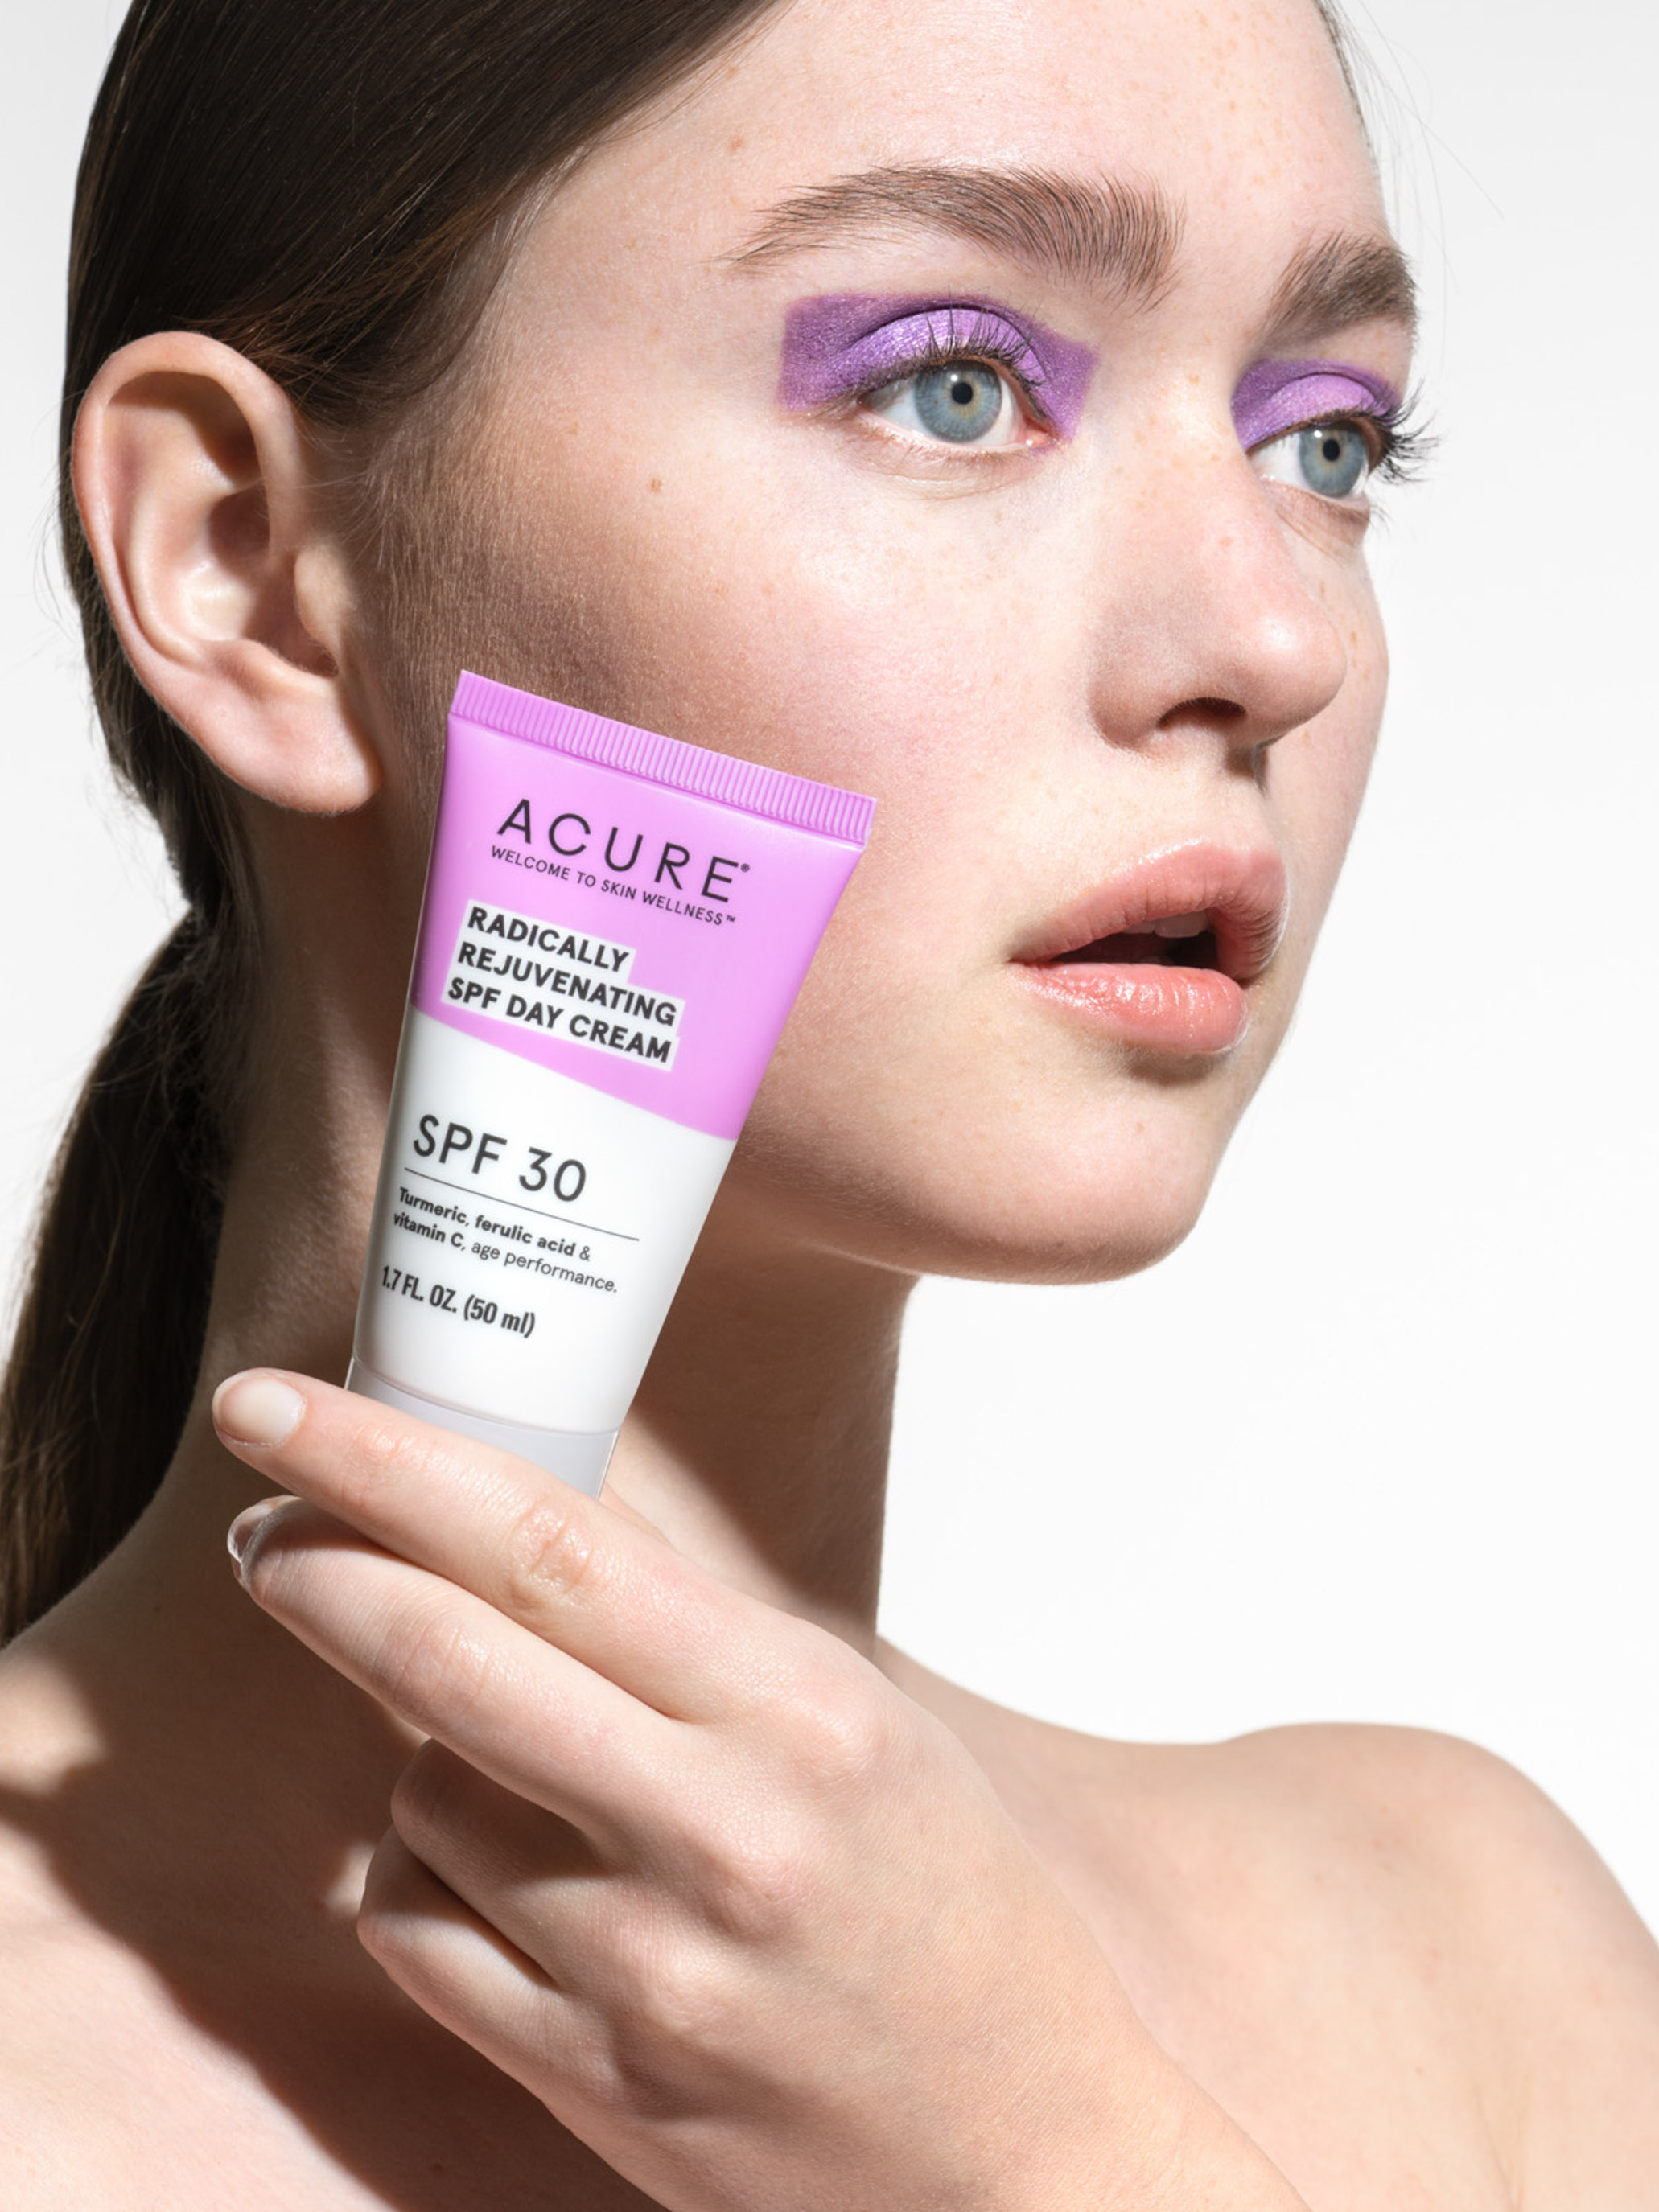 STAN Acure Beauty Portrait with Radically Rejuvinating SPF Day Cream